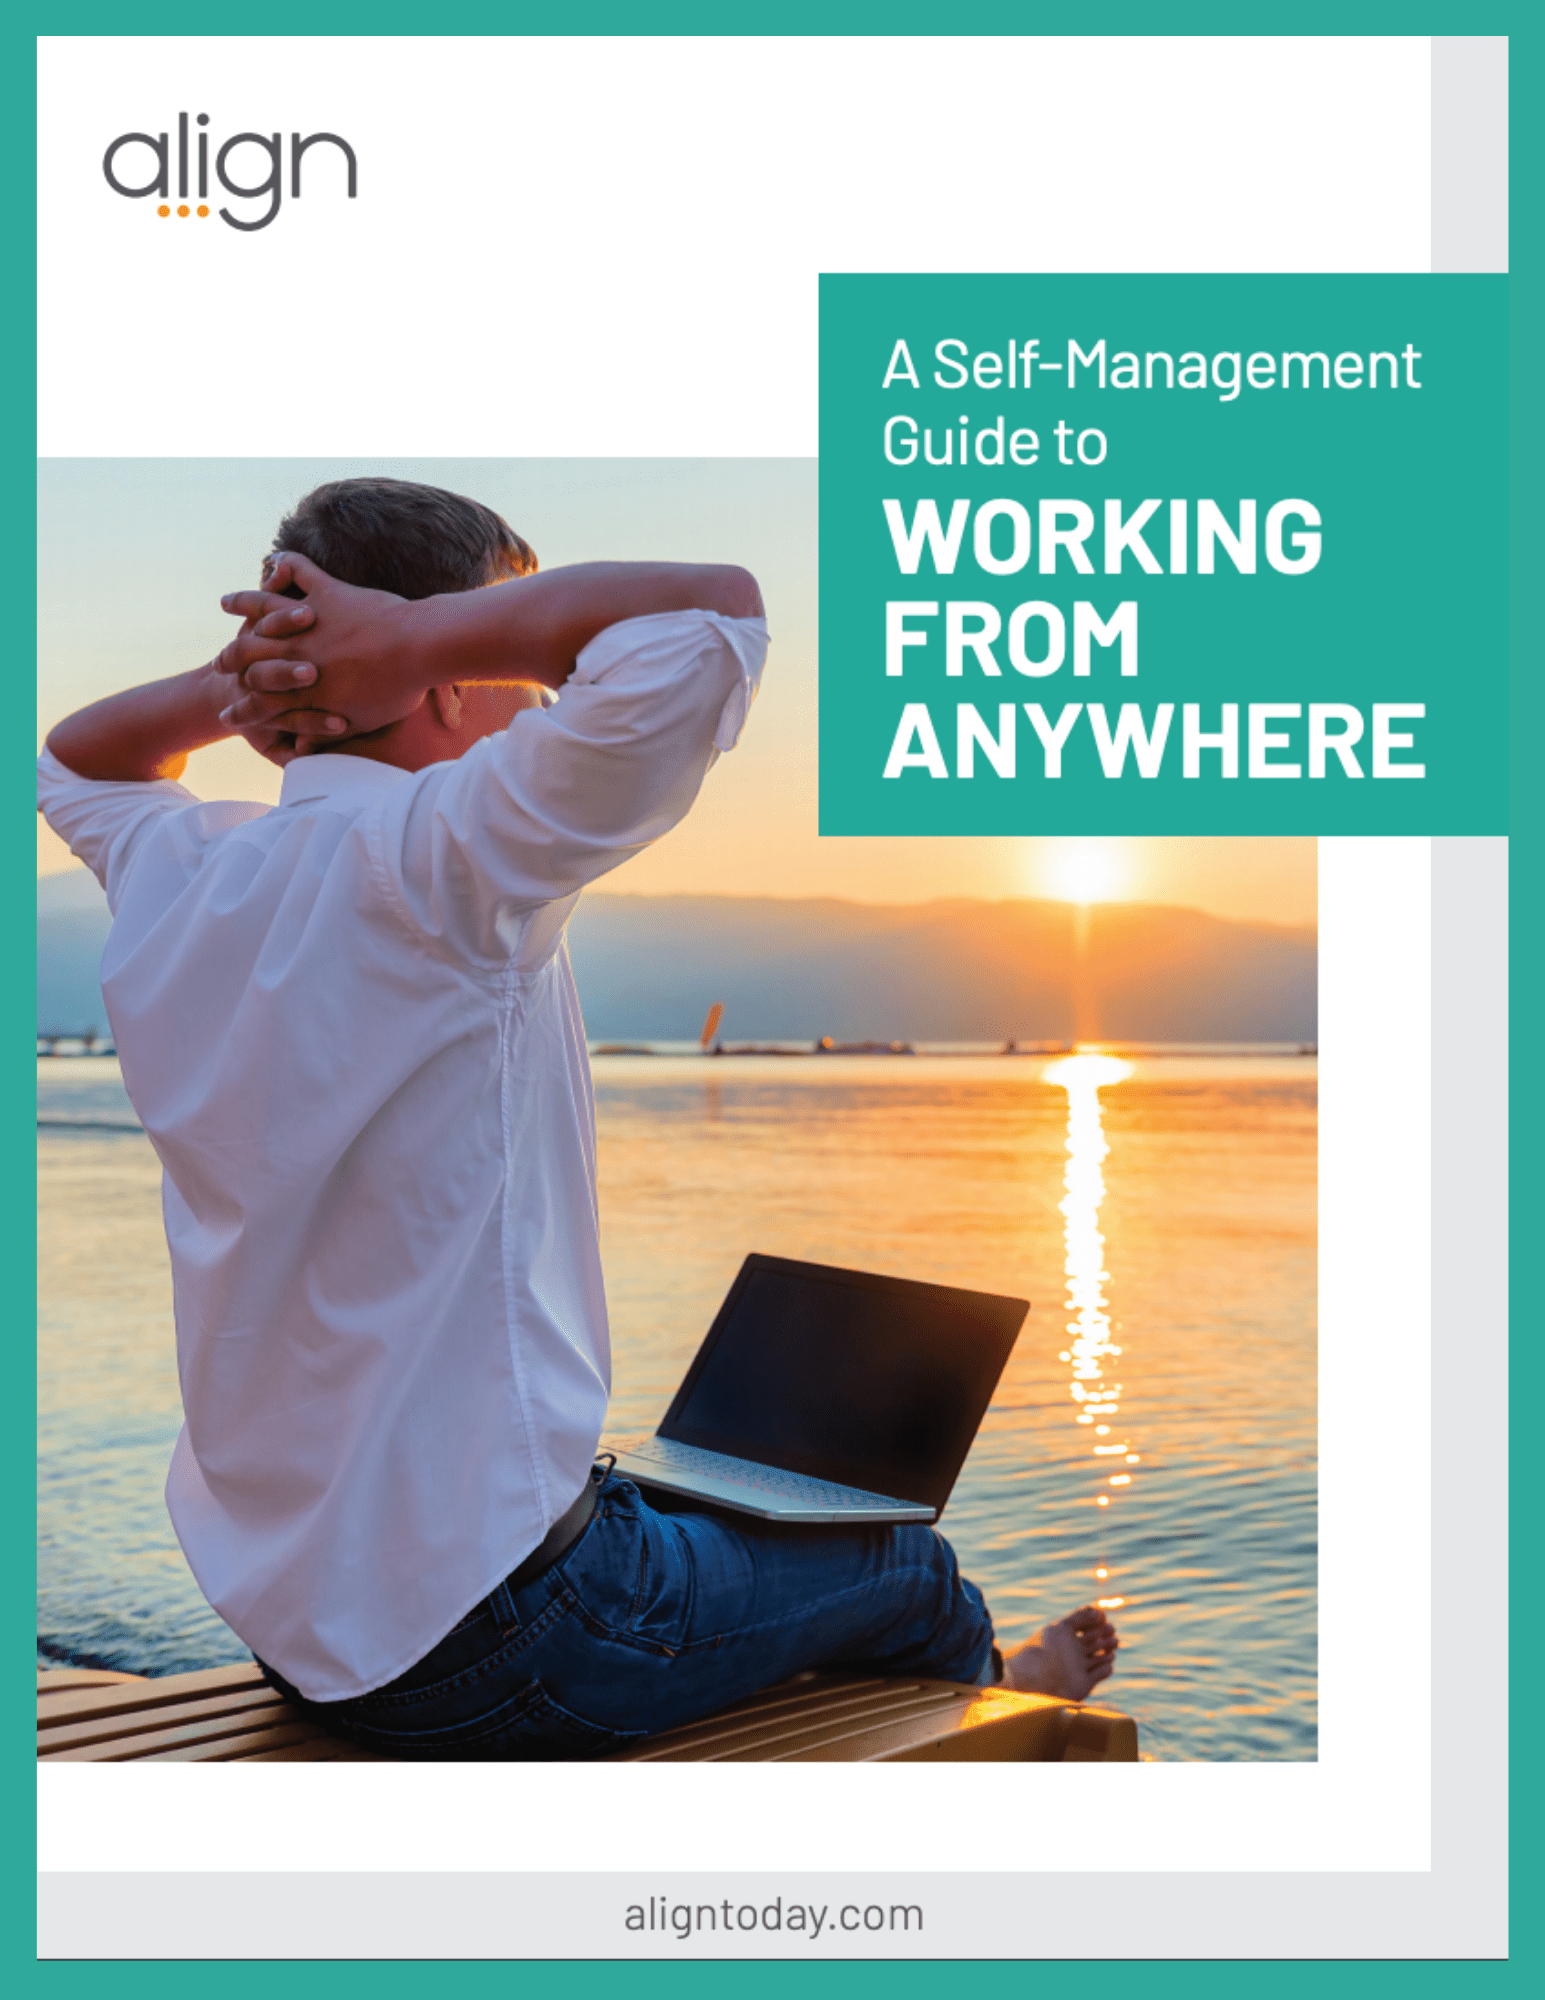 Cover to the Self-Management Guide to Working from Anywhere